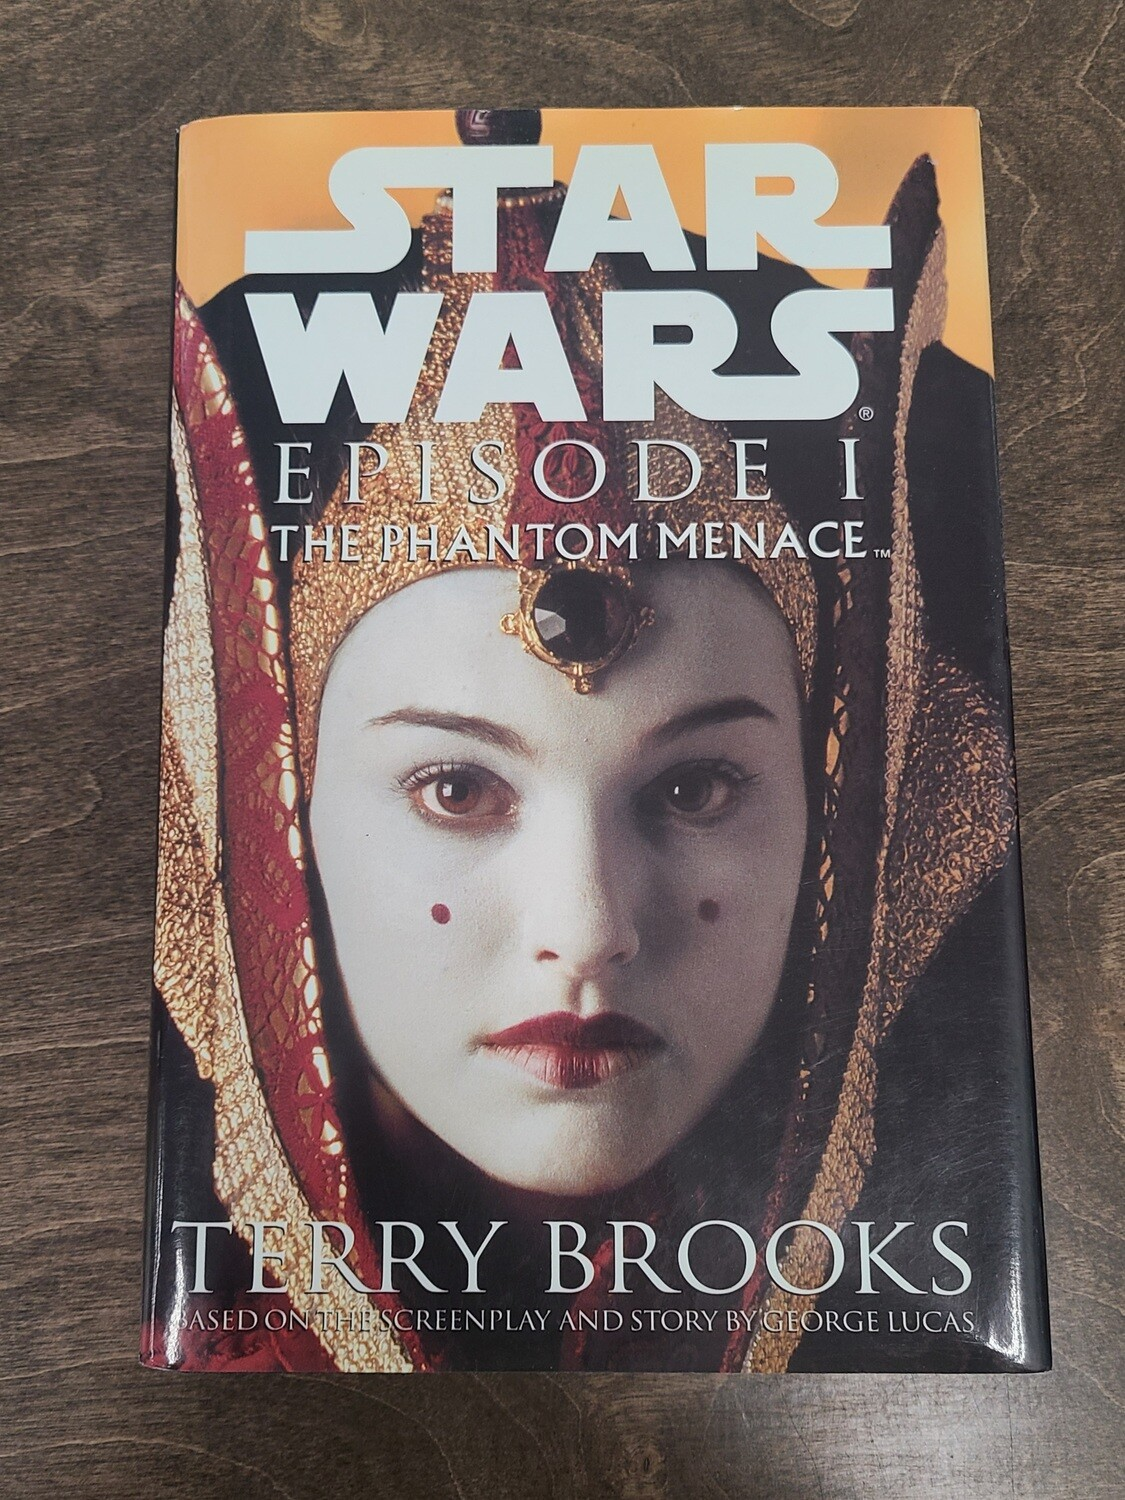 Star Wars: Episode 1 - The Phantom Menace by Terry Brooks